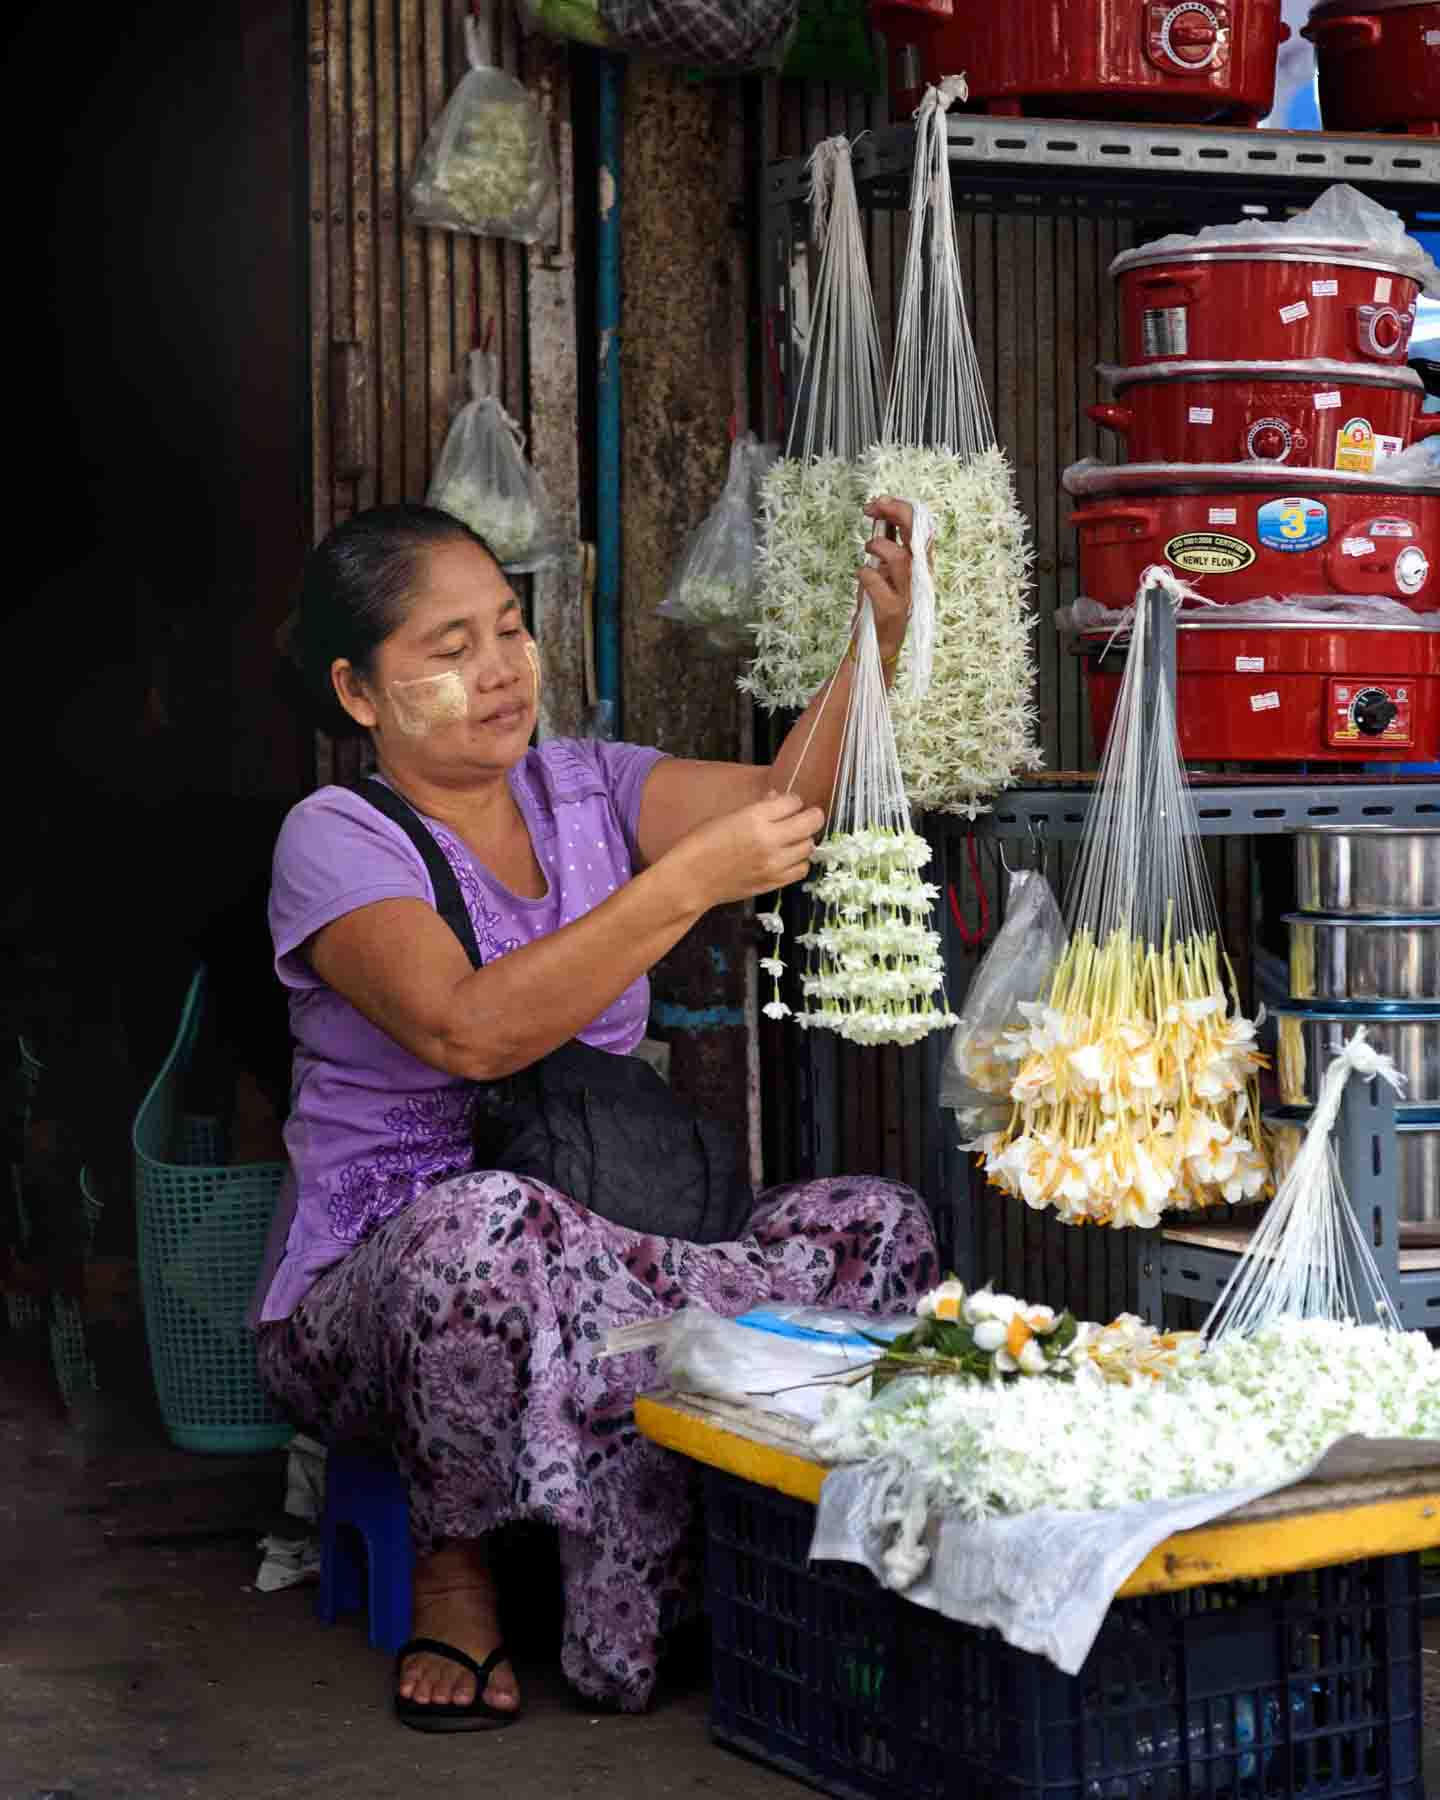 Selling garlands of fresh Jasmine and June flowers, a fragrant, auspicious flower used like lei and as hair decorations as well as temple offerings for Buddhist deities. (Photo: Naomi Hellmann)